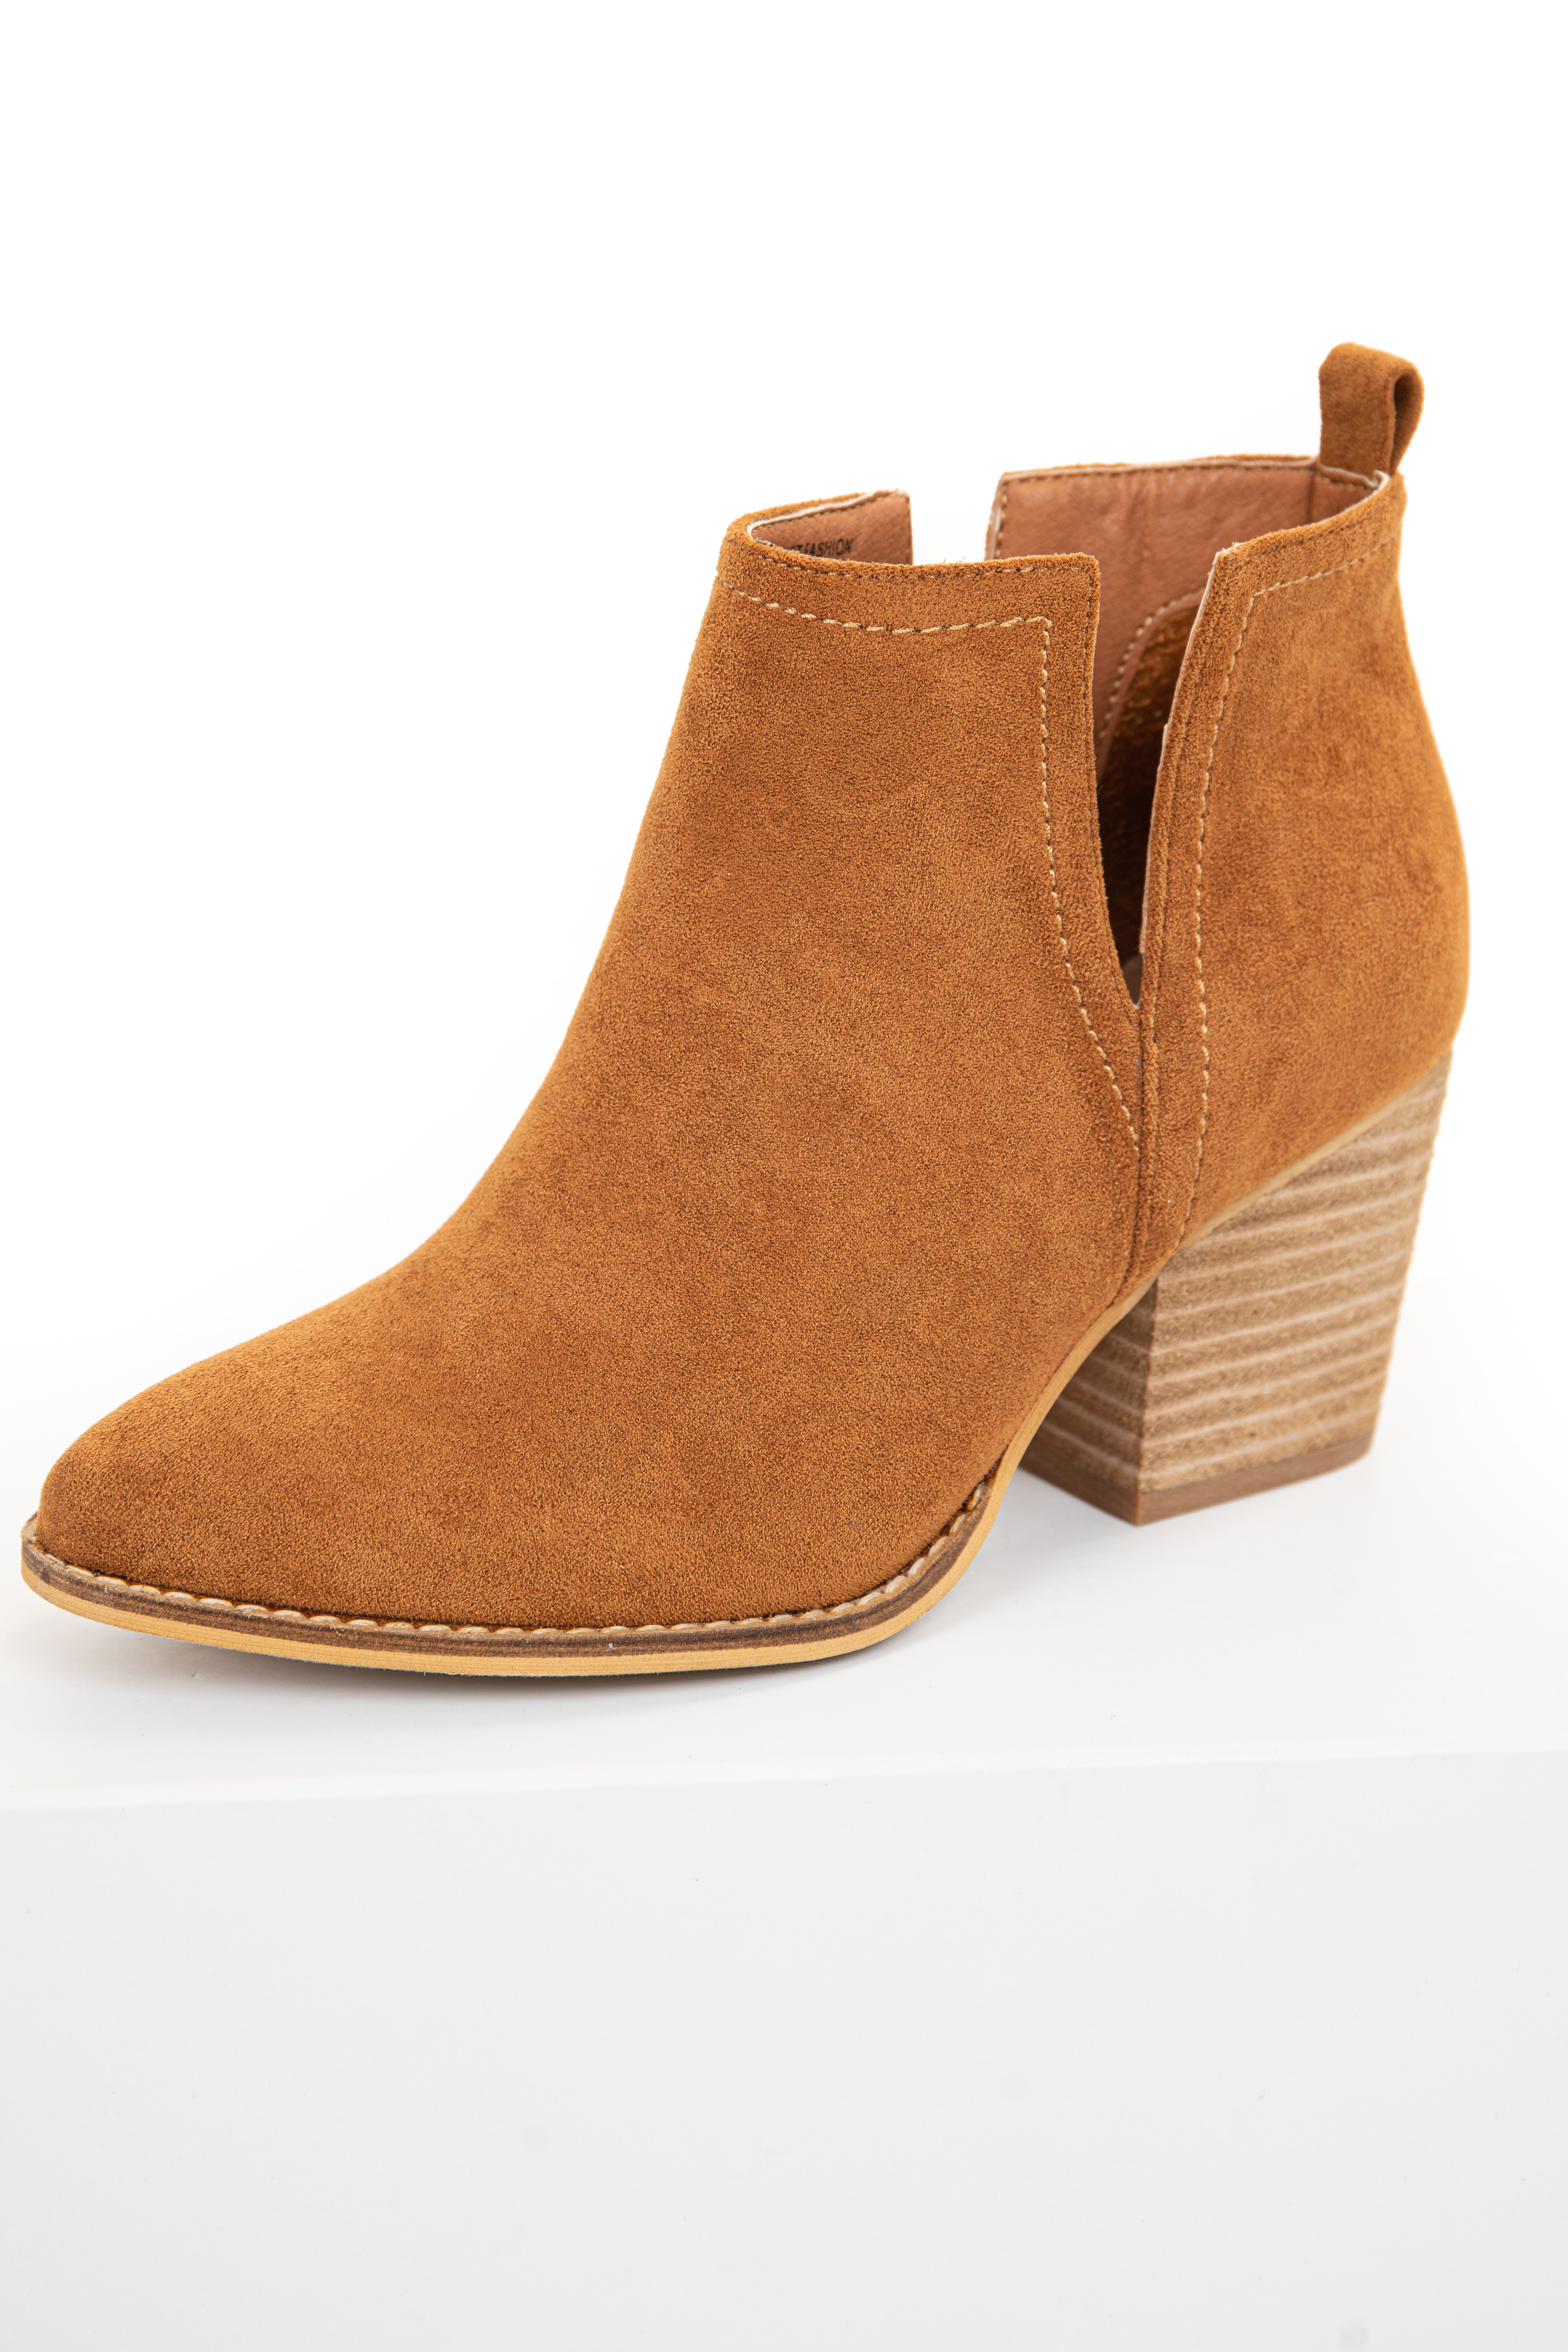 Caramel Faux Suede Bootie with Tan Stacked Heel